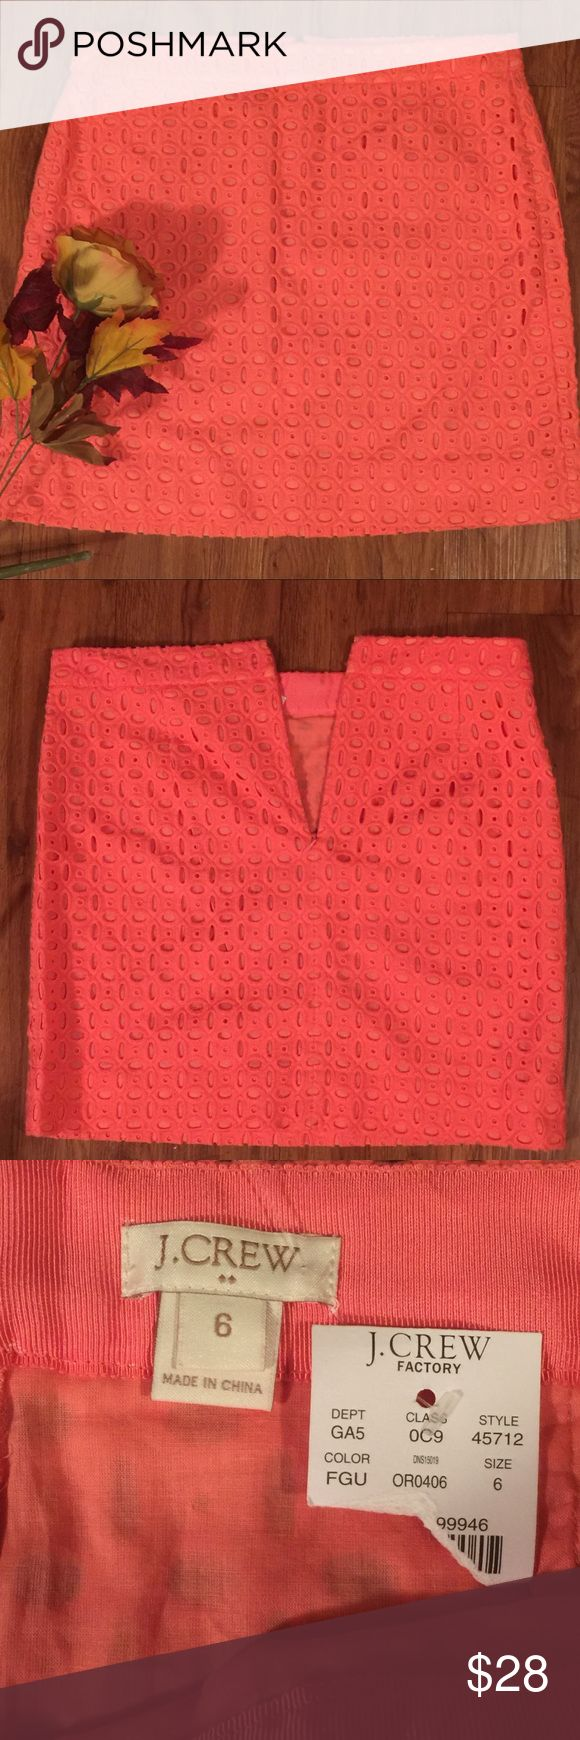 """J.Crew Factory Peach Eyelet Lace Mini Skirt J.Crew Factory Peach Eyelet Lace Mini Skirt BRAND NEW with tag. Size 6 measure flat approx 15"""" across waist, 19"""" across hips & 16"""" Long. Back of skirt has a zipper to zip up! 100% cotton!! HappyPoshing J. Crew Factory Skirts Mini"""